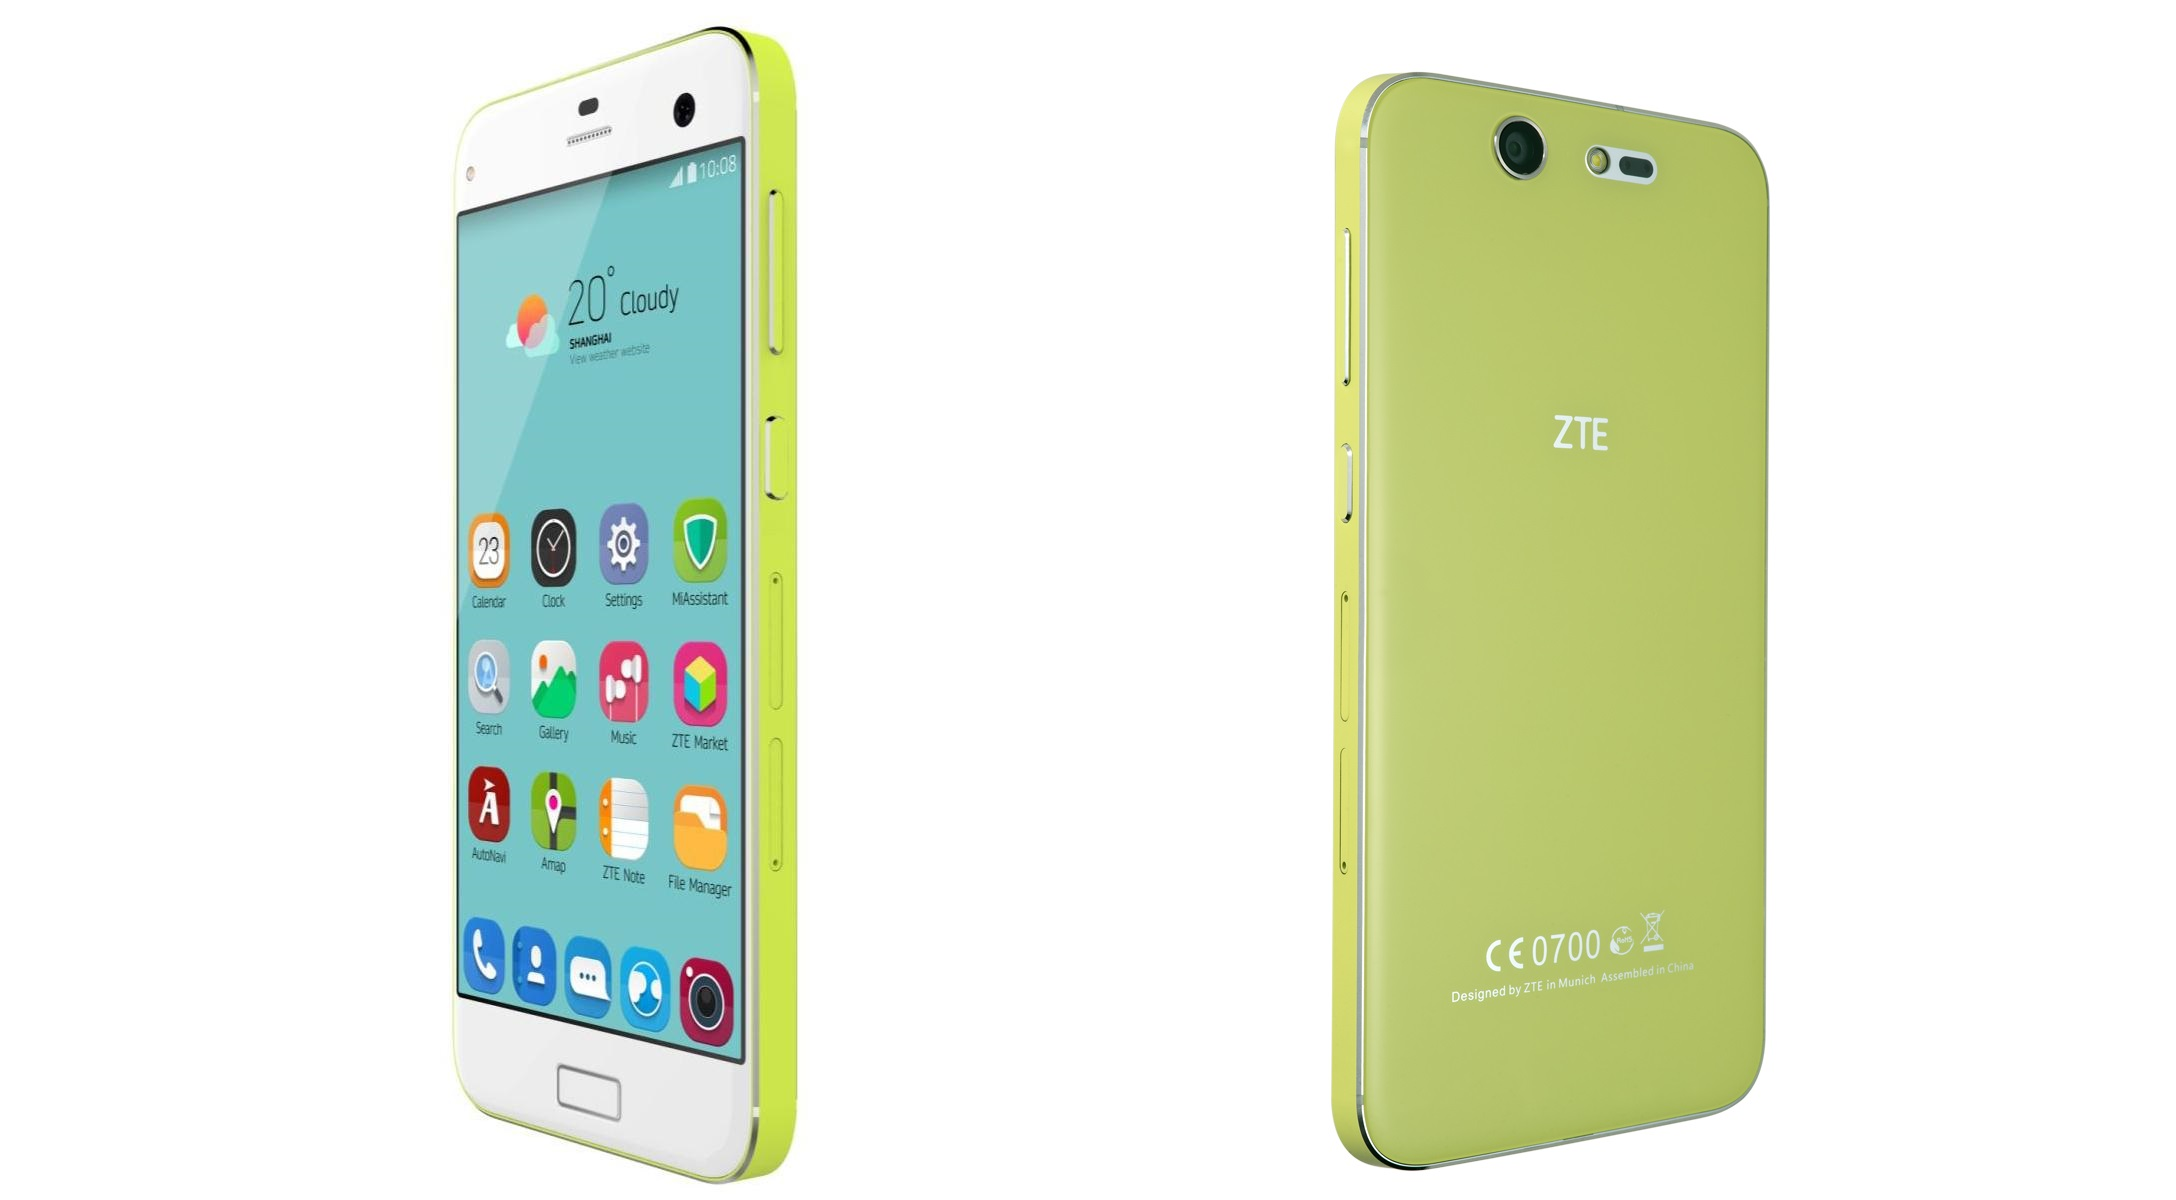 zte blade s7 - ZTE mobile price in Nepal | Cost of latest ZTE smartphones